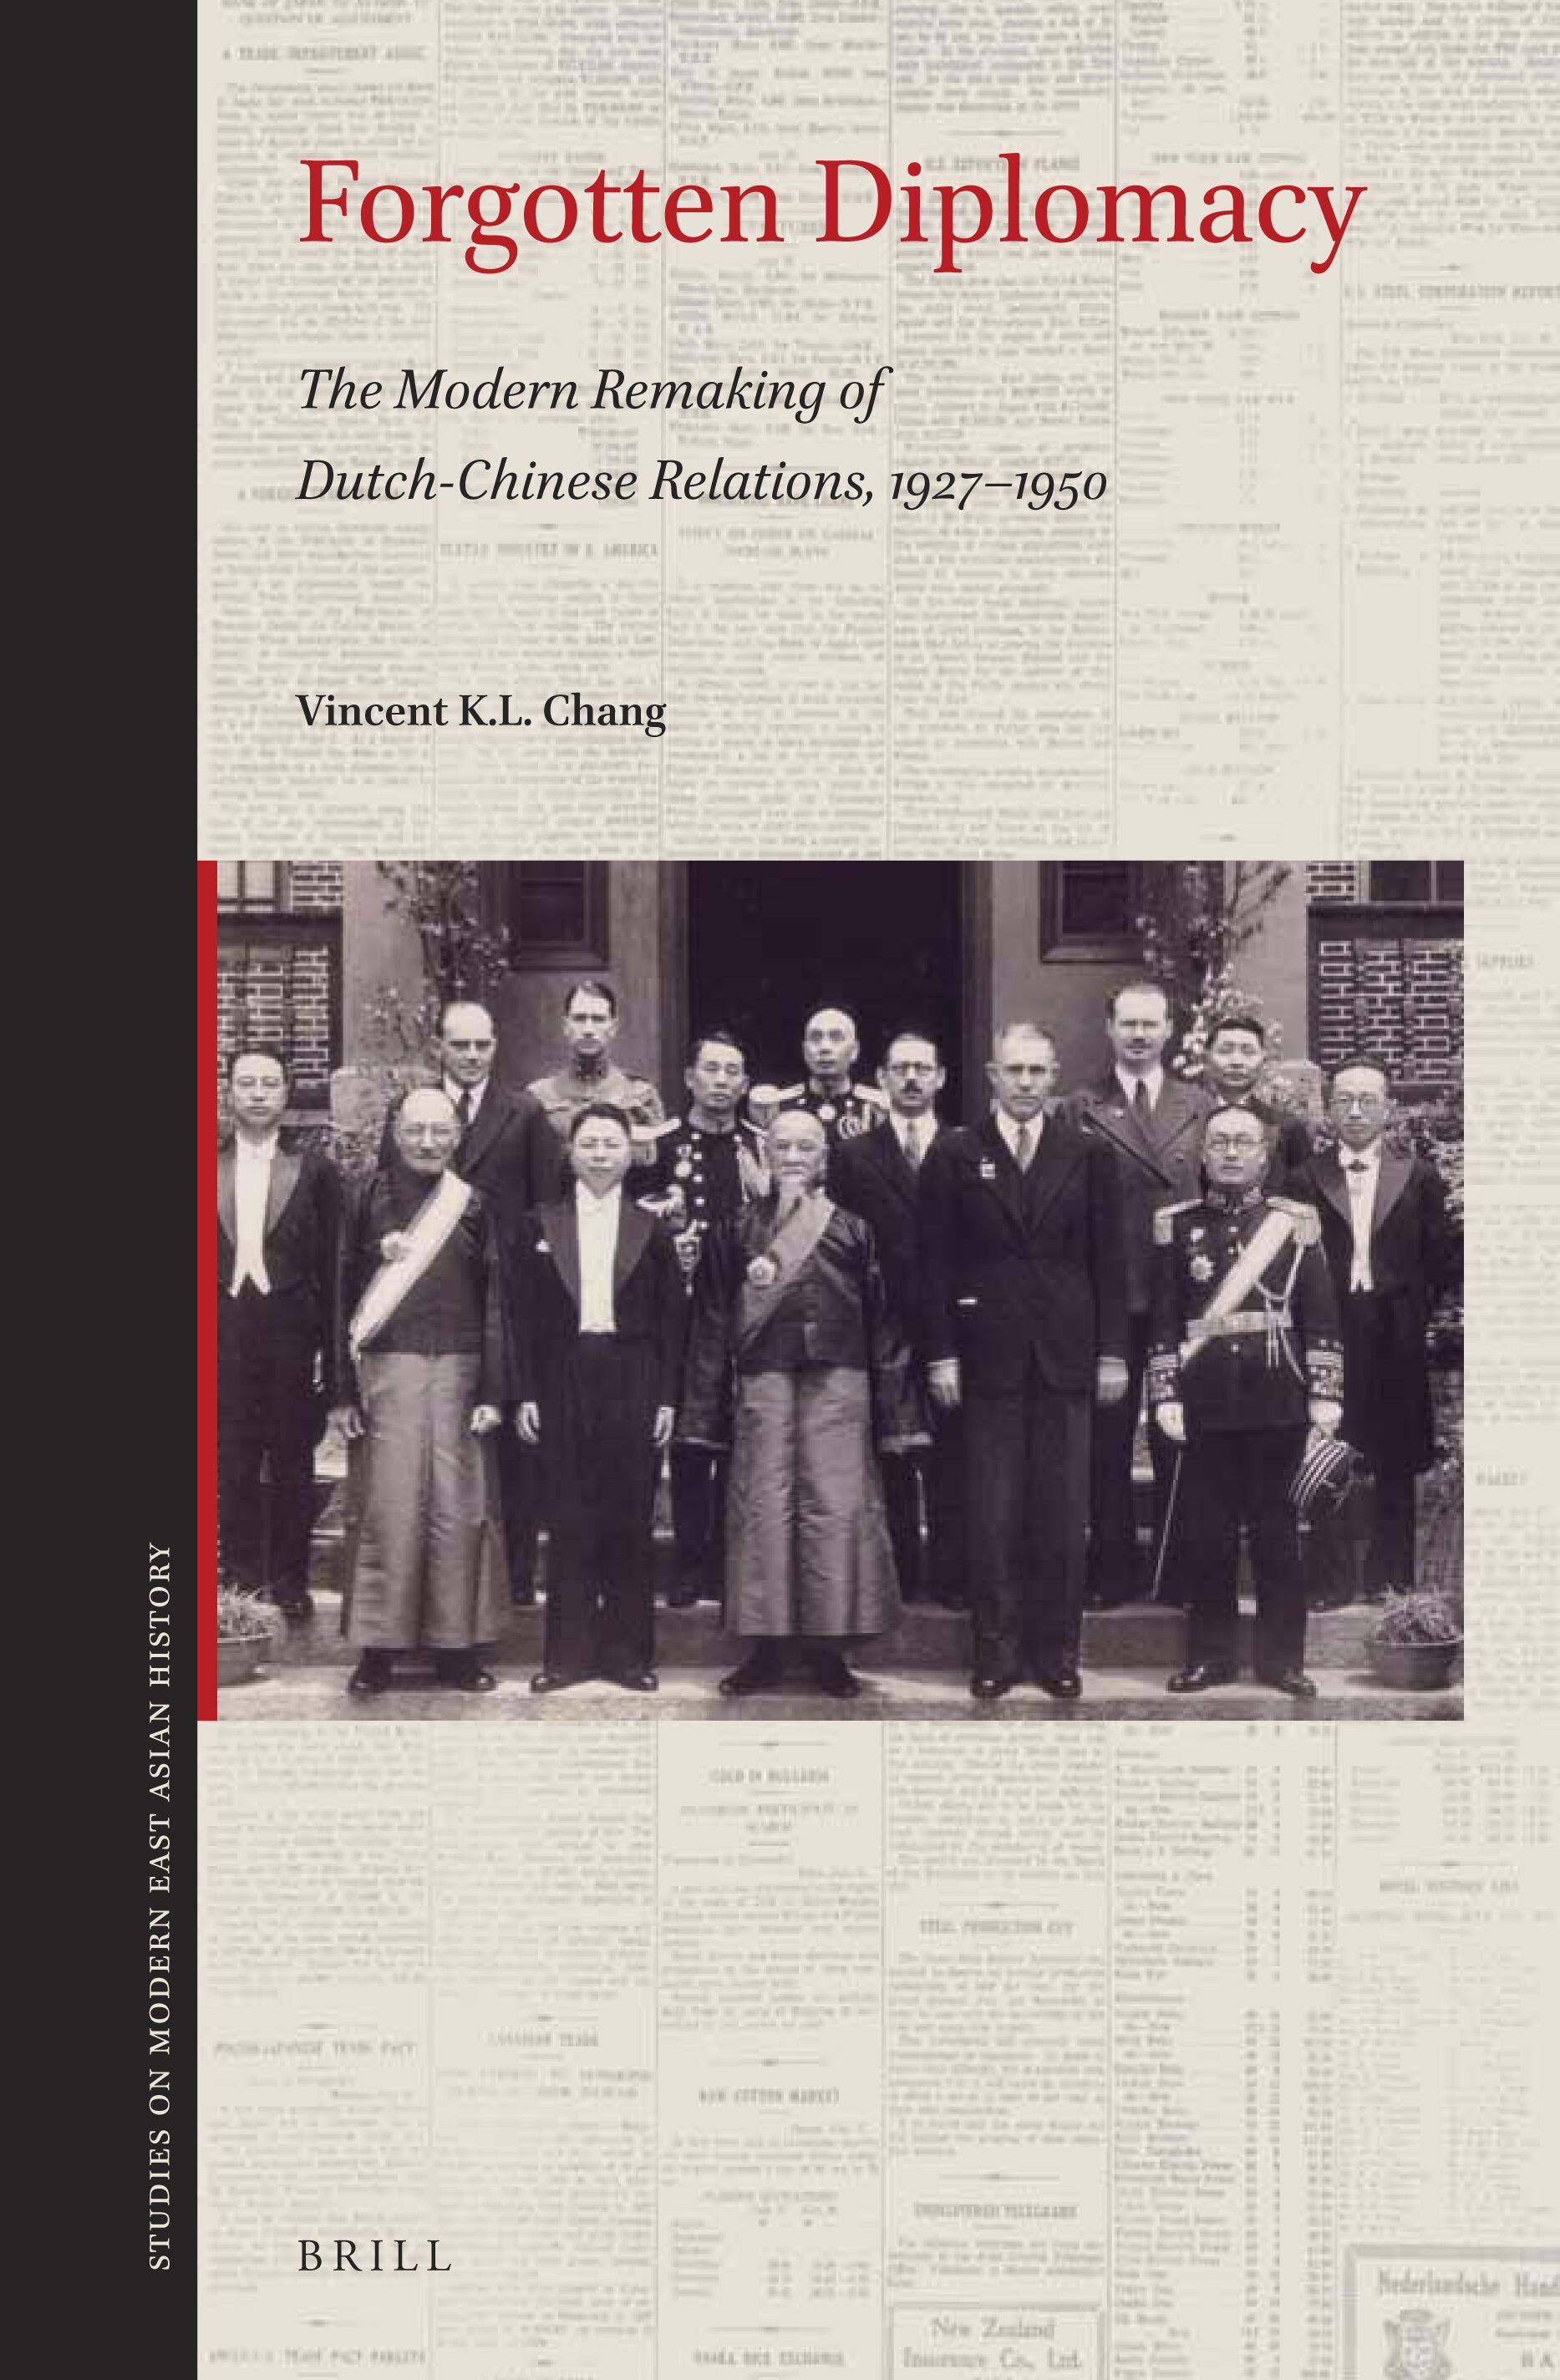 Recognition Of The Peoples Republic Of China In Forgotten